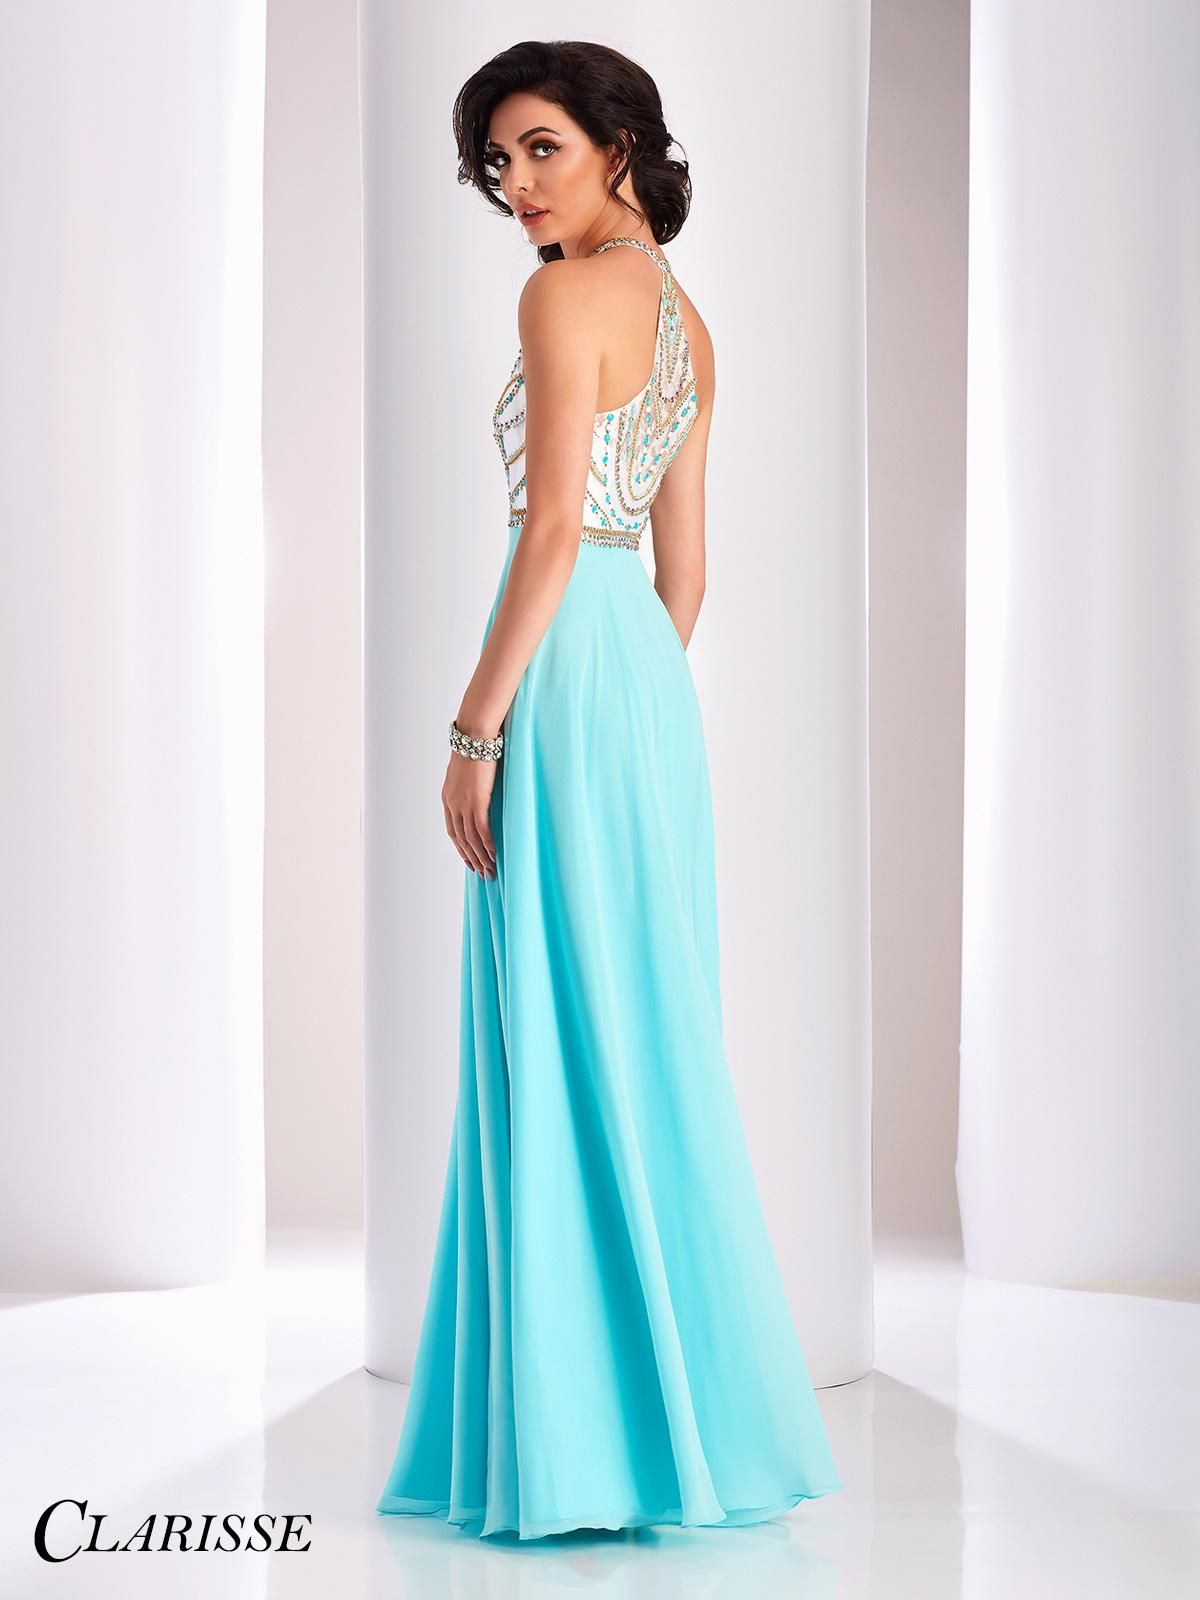 Clarisse 2017 A-Line Prom Dress Style 3069. Don\'t wait to purchase ...